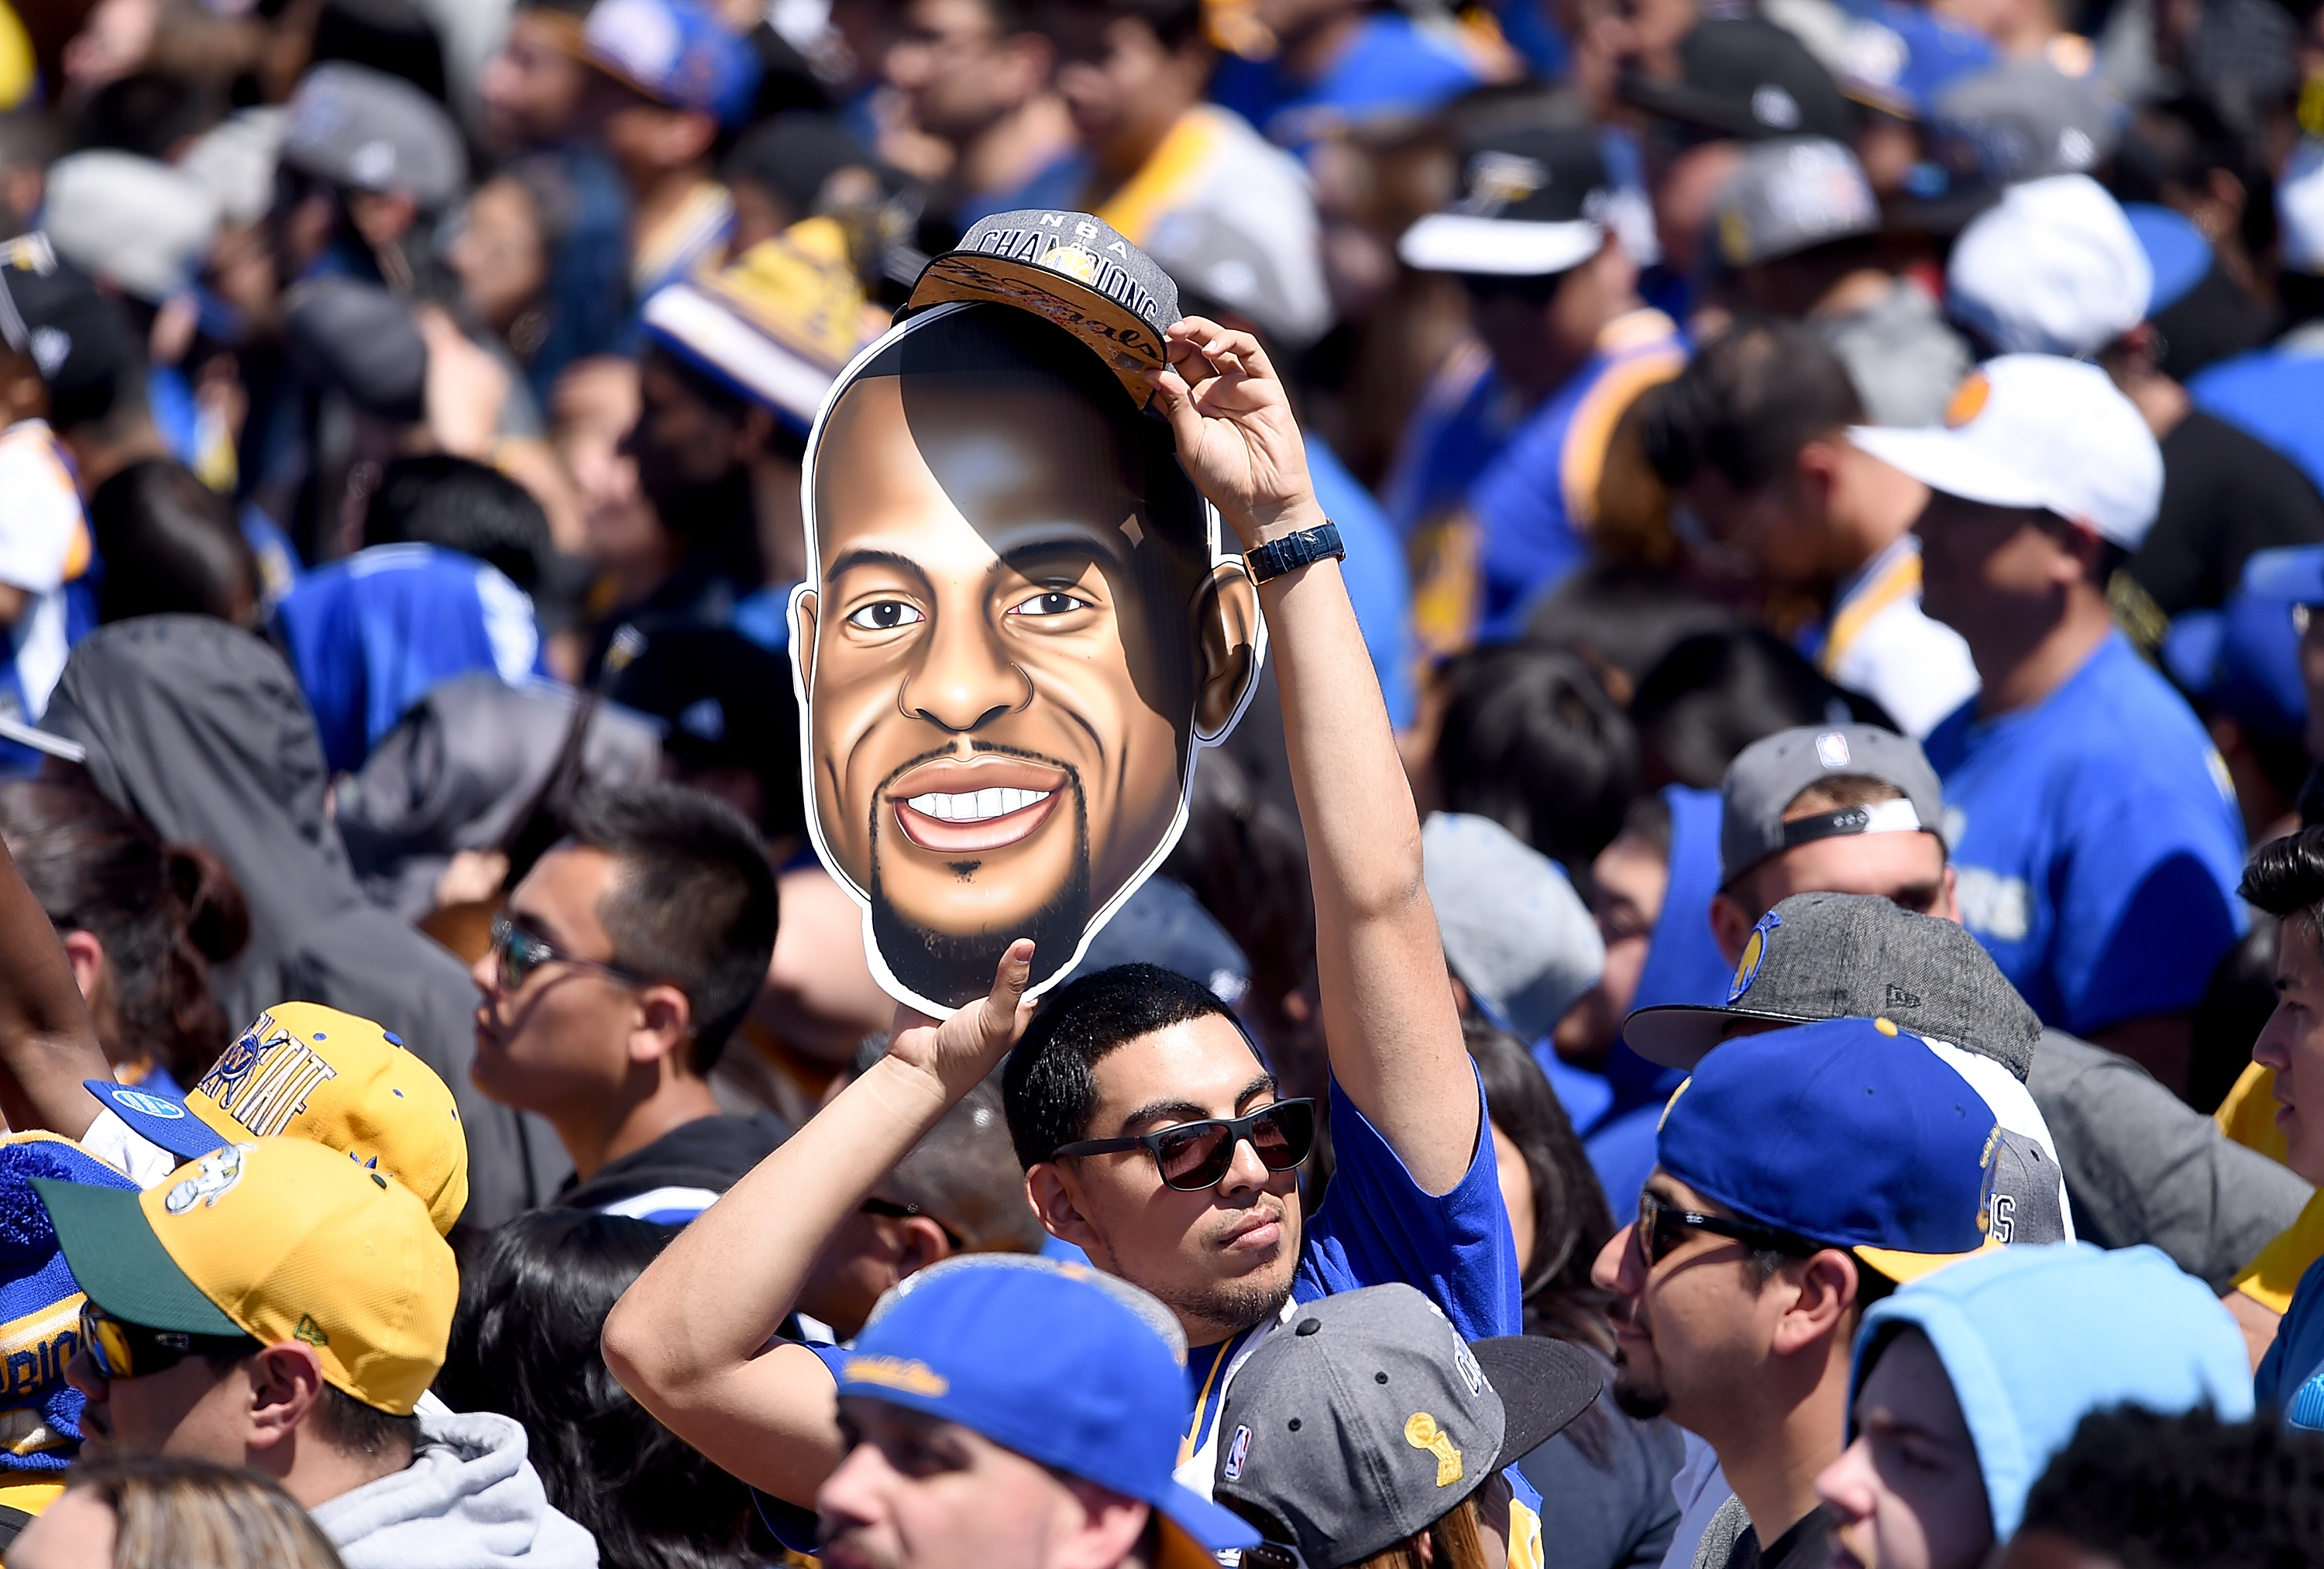 NBA Stars Andre Iguodala and Jaylen Brown Talk Tech, Investing, and Championships